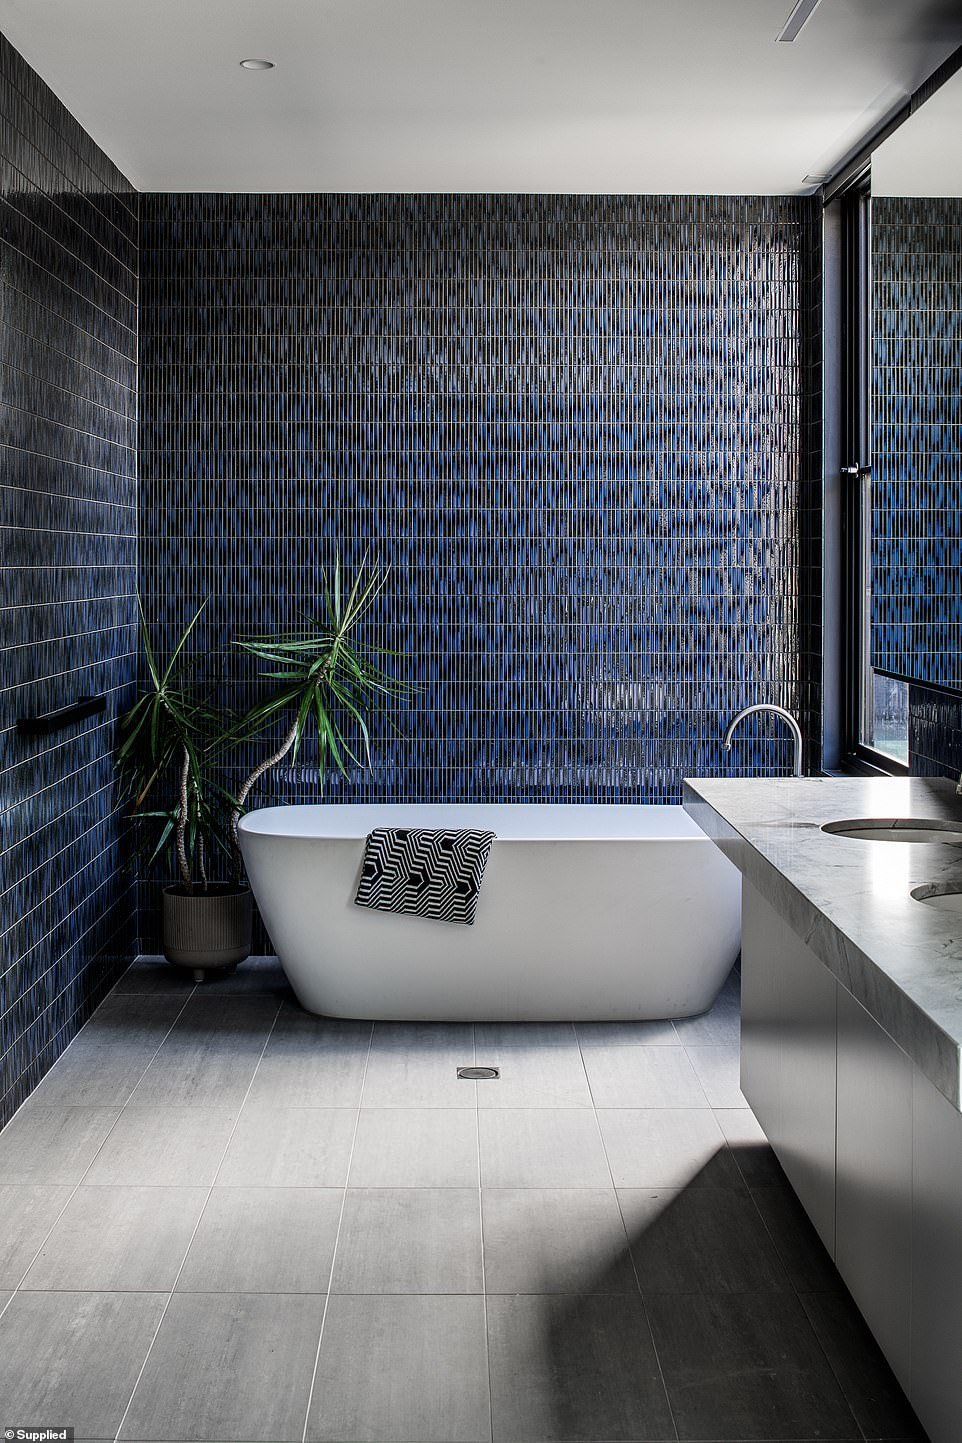 Japanese finger tiles run from floor to ceiling in the bathroom, which has a freestanding bathtub and 'his' and 'hers' sinks